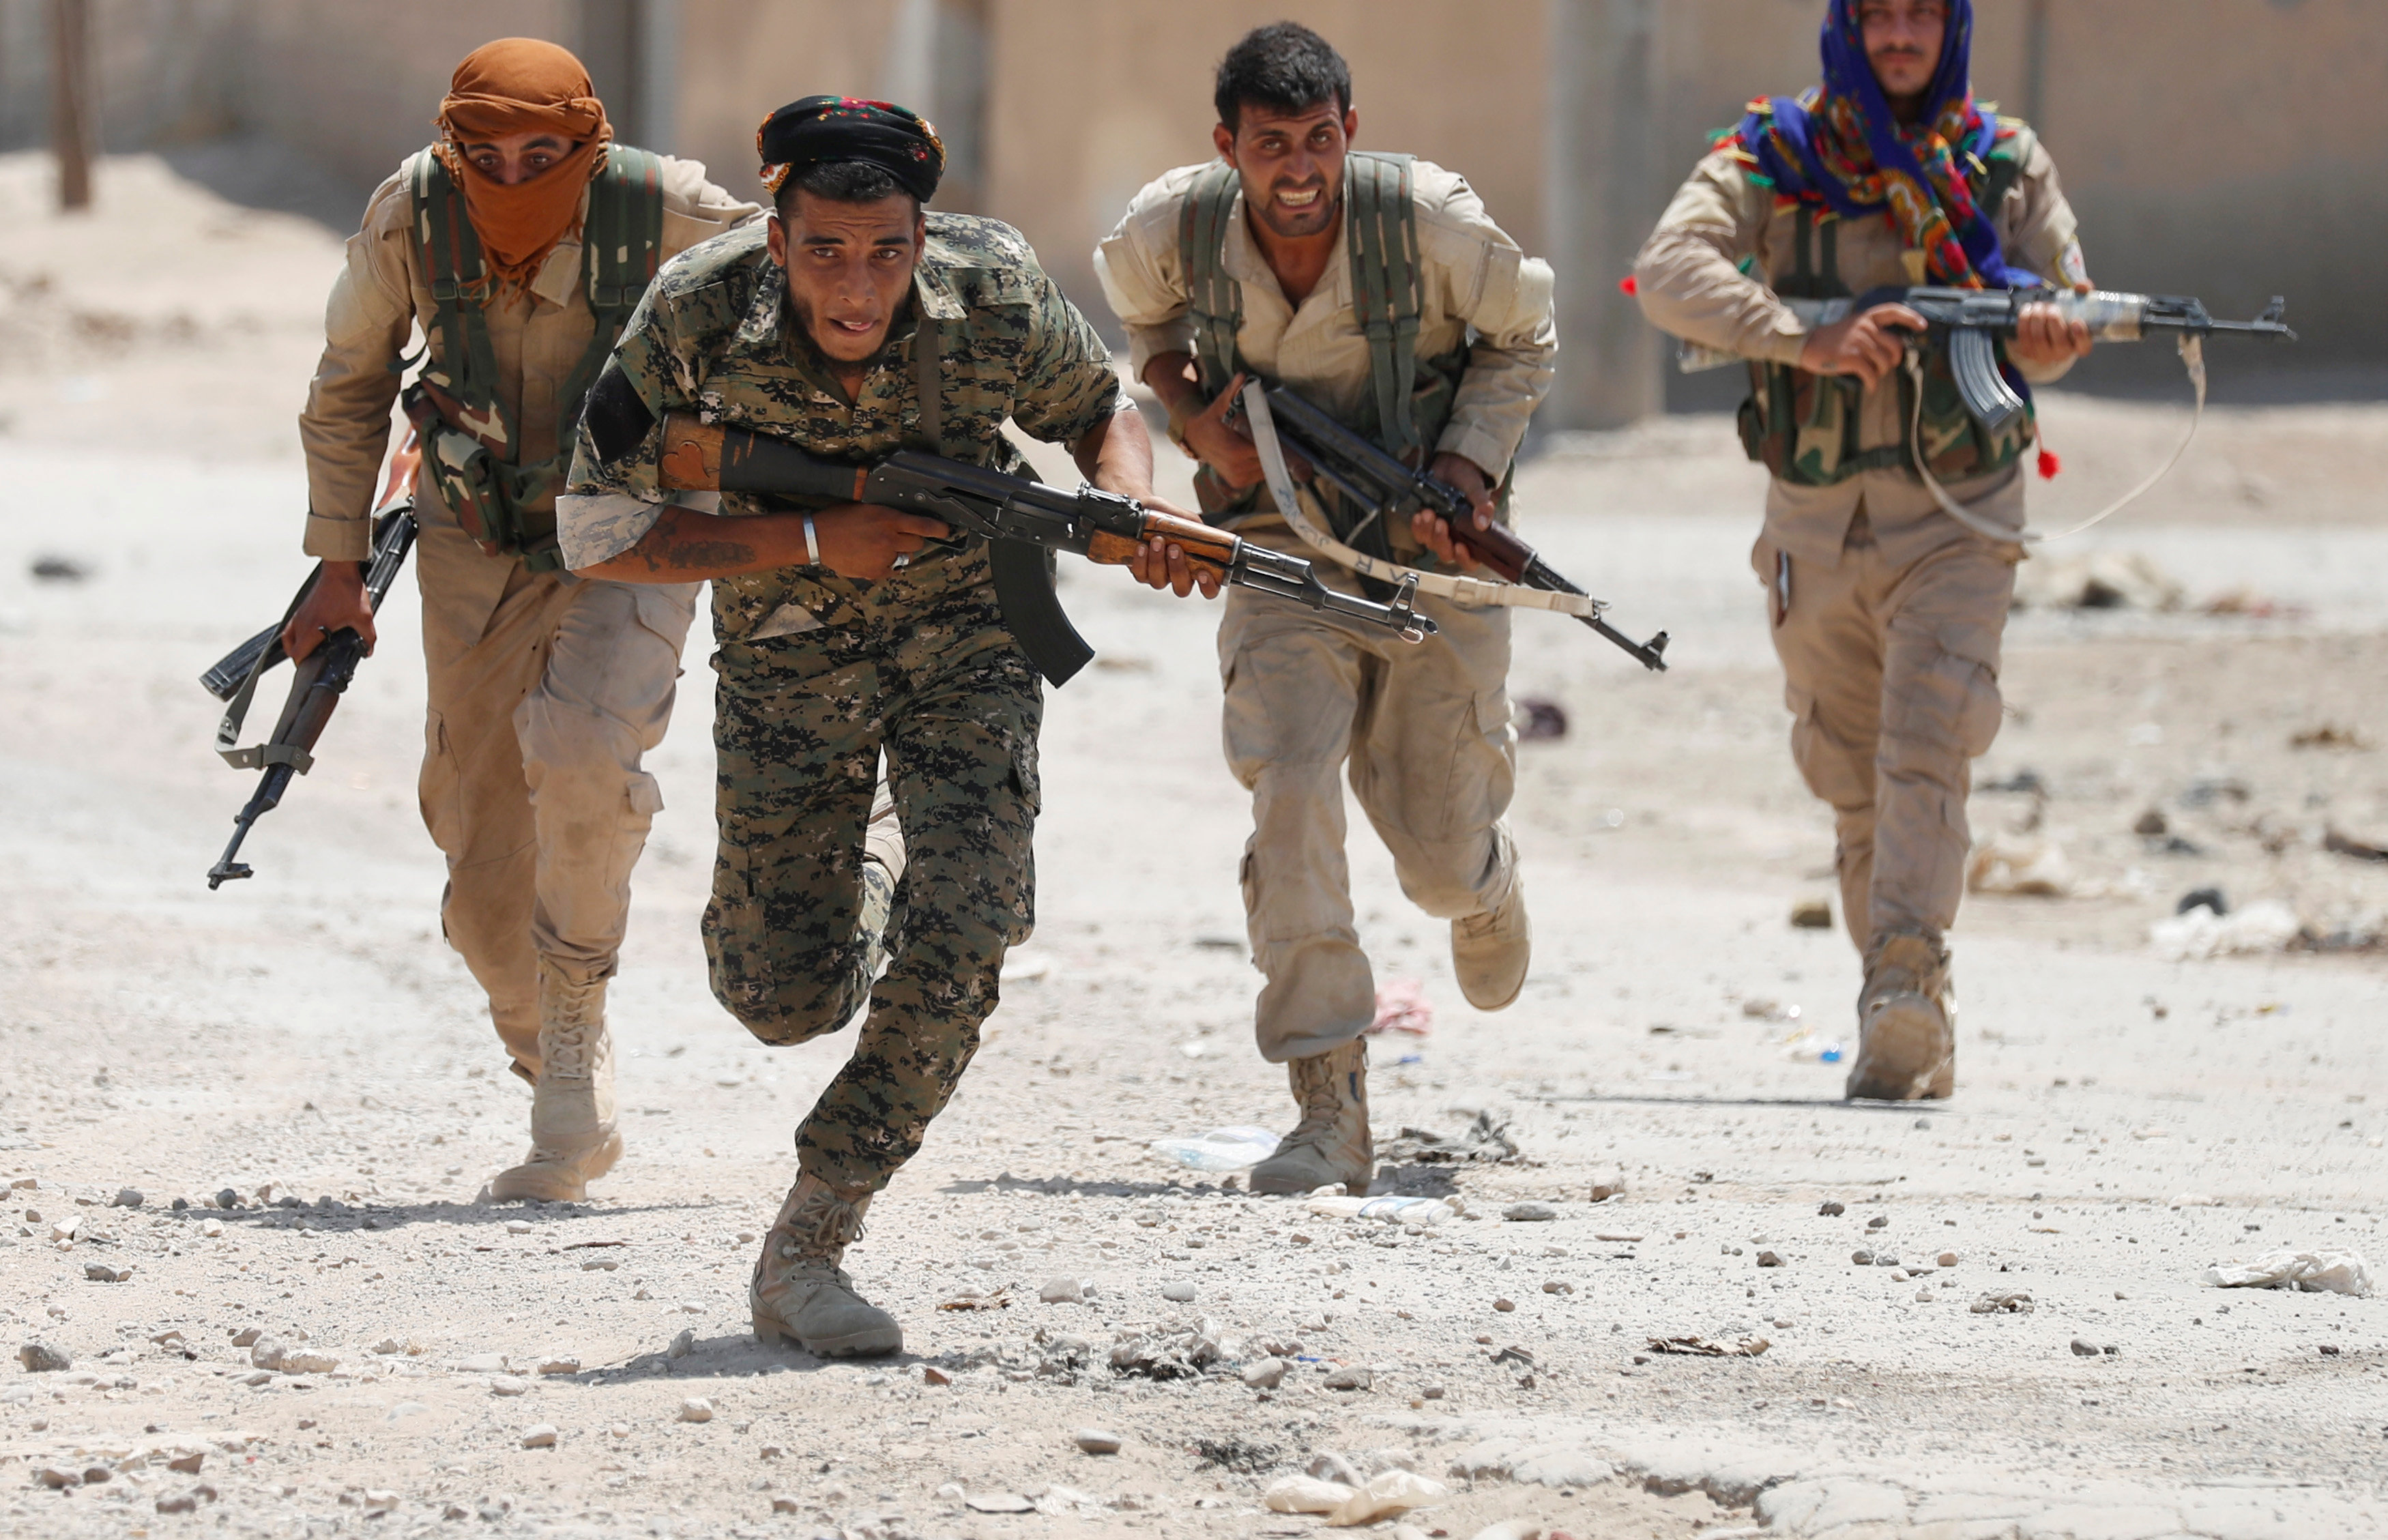 Fighting continues in Syria, where Kurdish troops from the People's Protection Units are facing down ISIS militants in Raqqa, Syria.